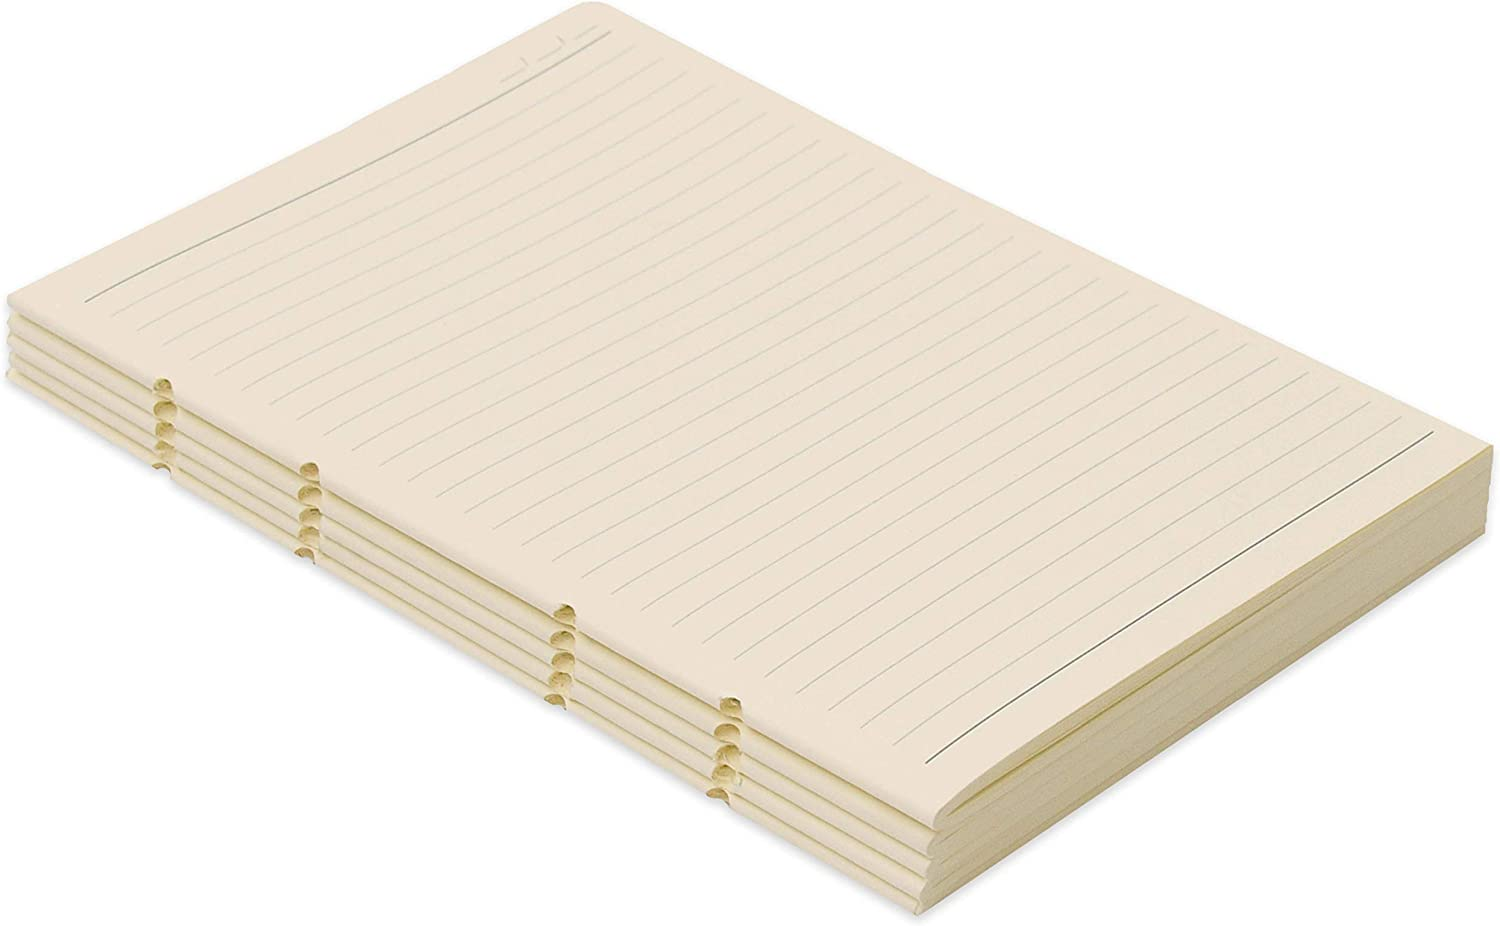 Journal Refill Lined Paper - A5 Paper Refill for Elizo Leather Journal Refillable - Cream Acid Free Paper 7x9